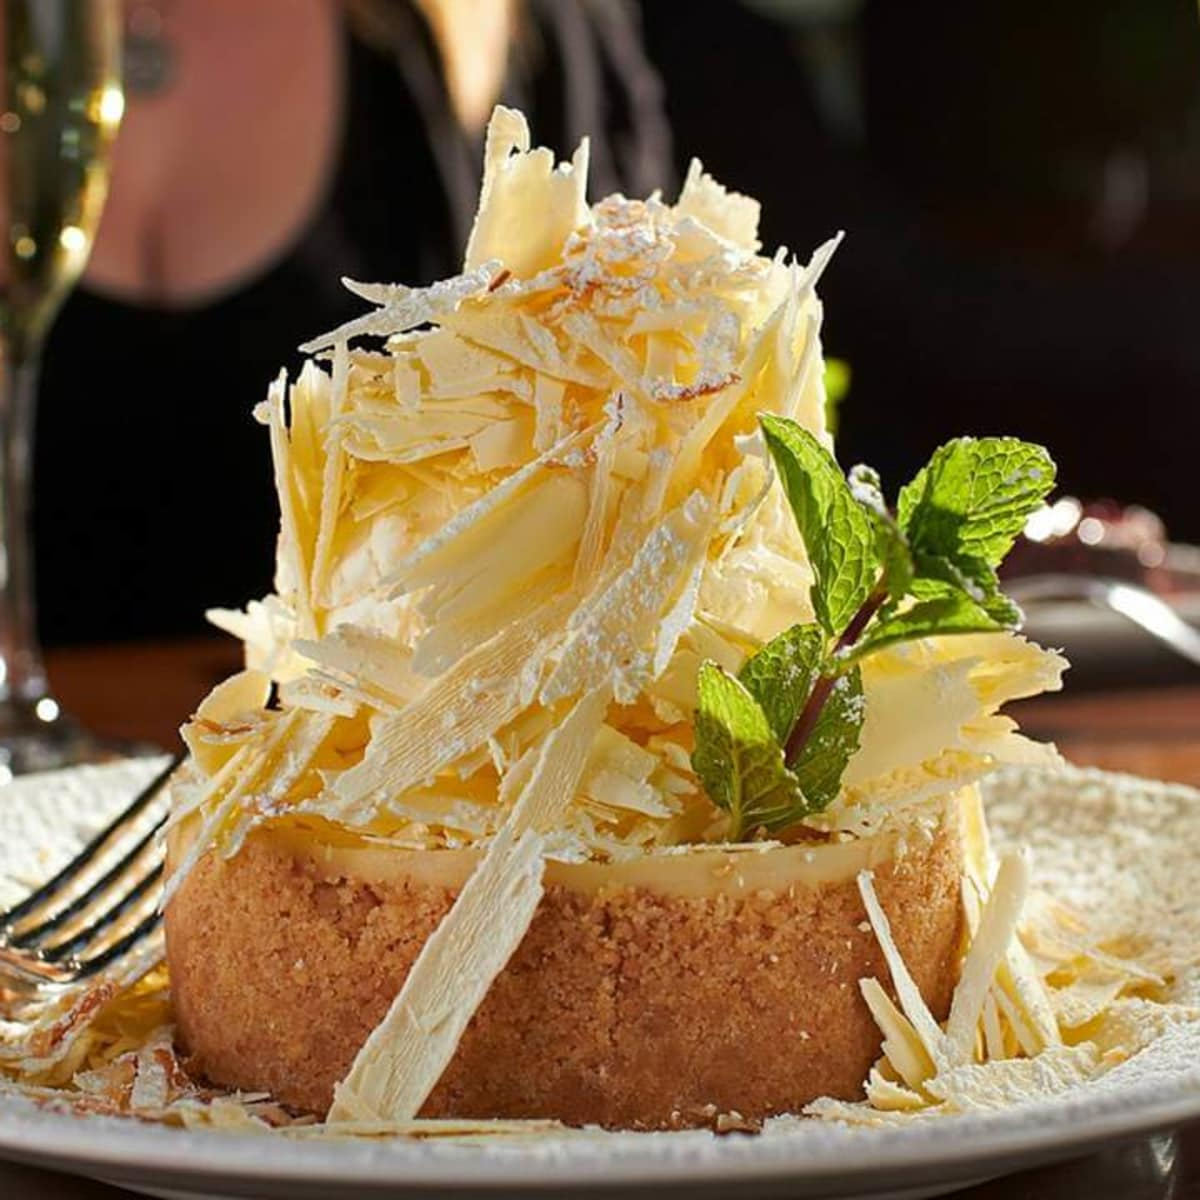 Del Frisco's Grille, Coconut Cream Pie